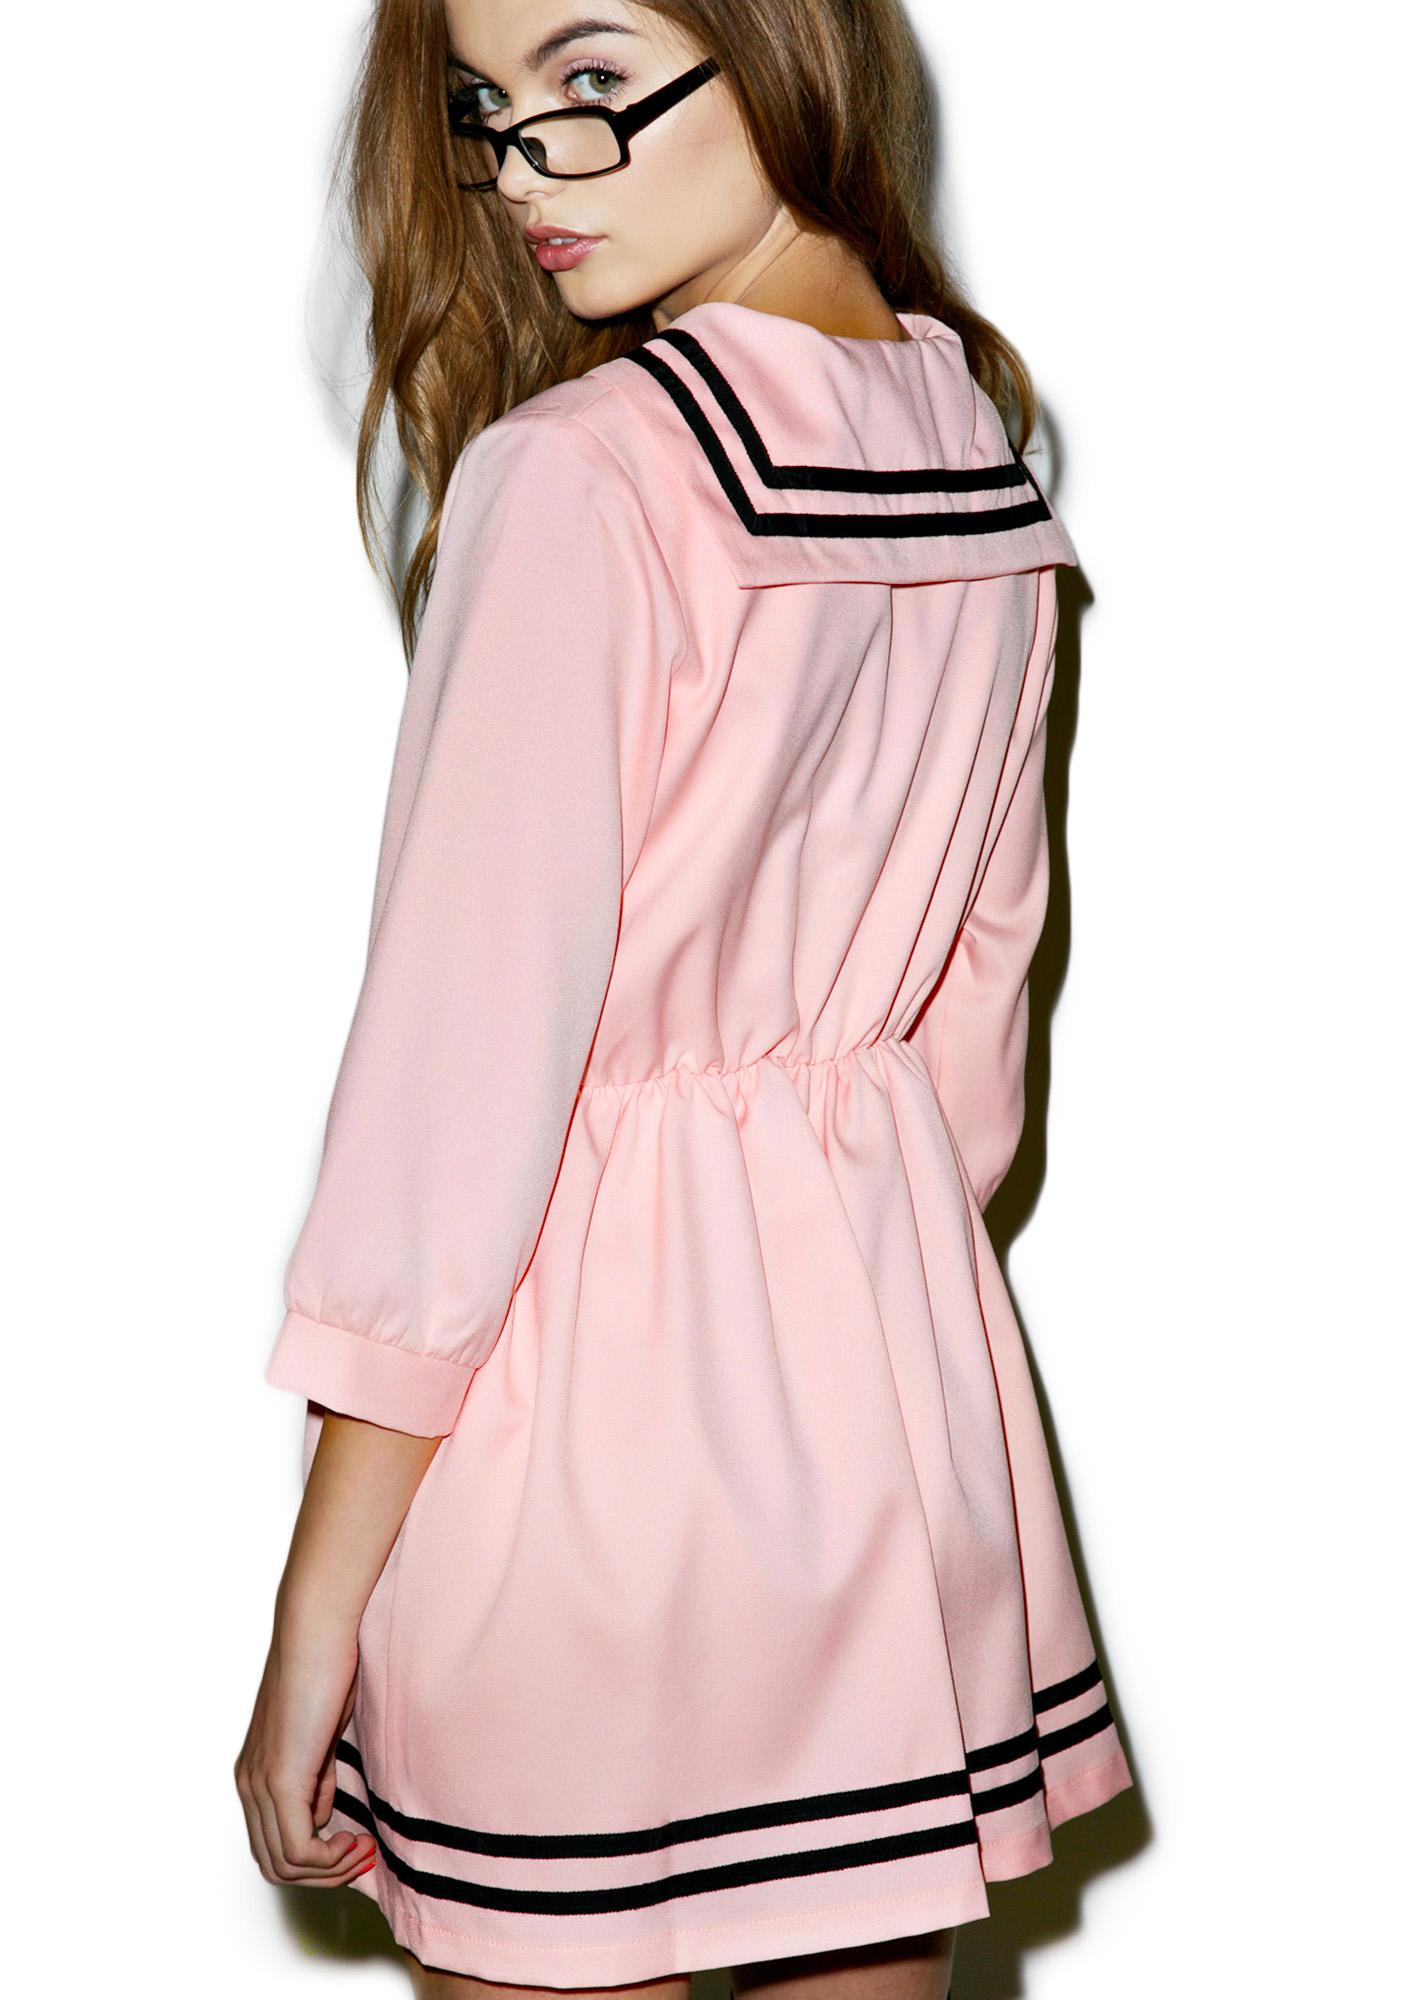 Pervy Princess Sailor Dress